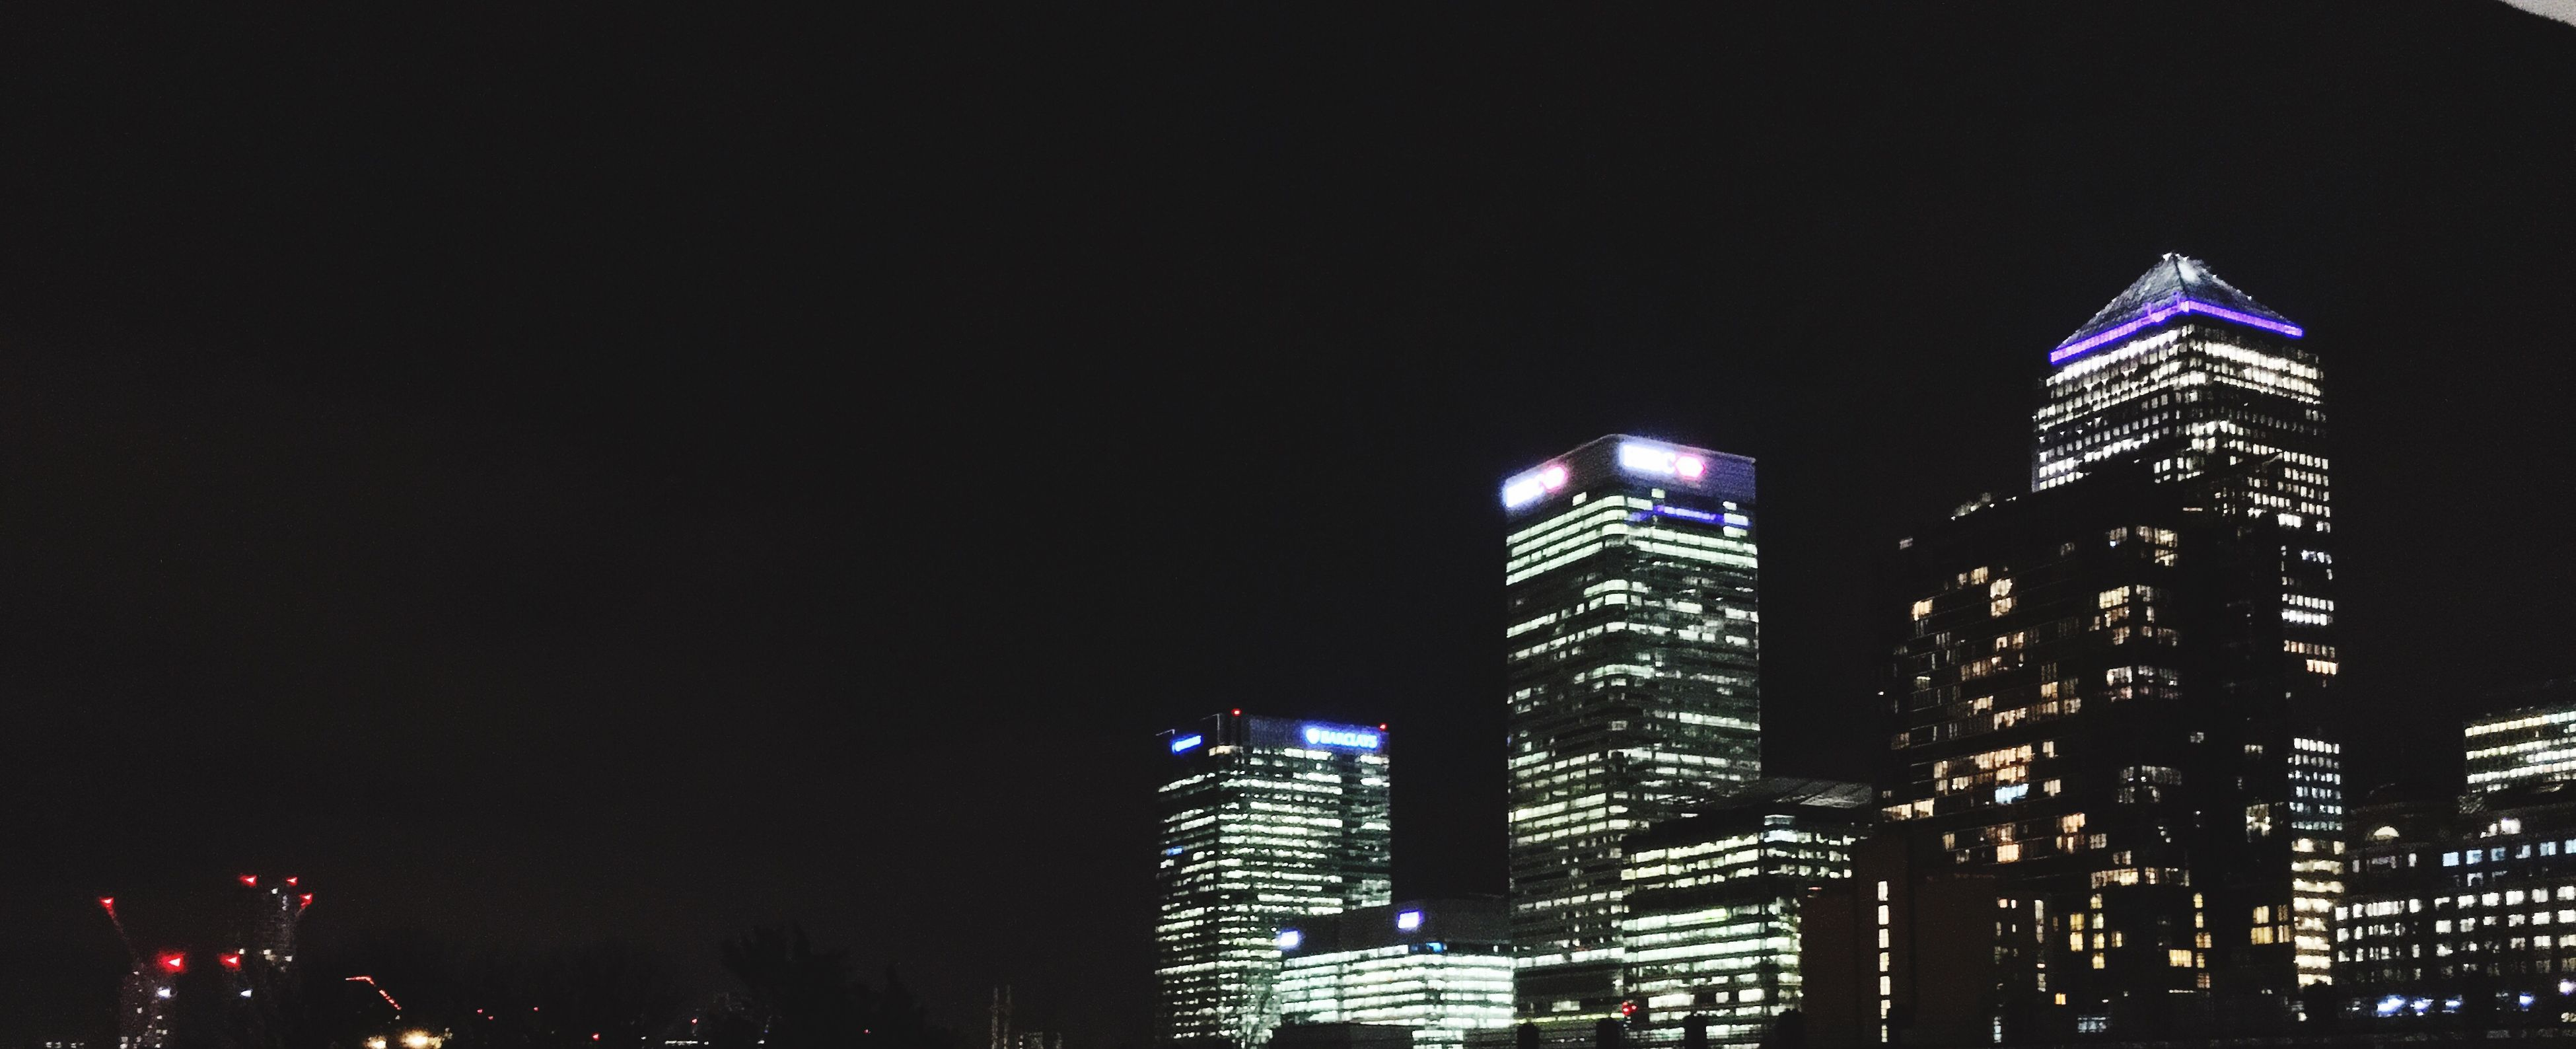 architecture, illuminated, building exterior, built structure, night, skyscraper, city, tall - high, modern, tower, office building, clear sky, low angle view, urban skyline, copy space, capital cities, city life, cityscape, tall, travel destinations